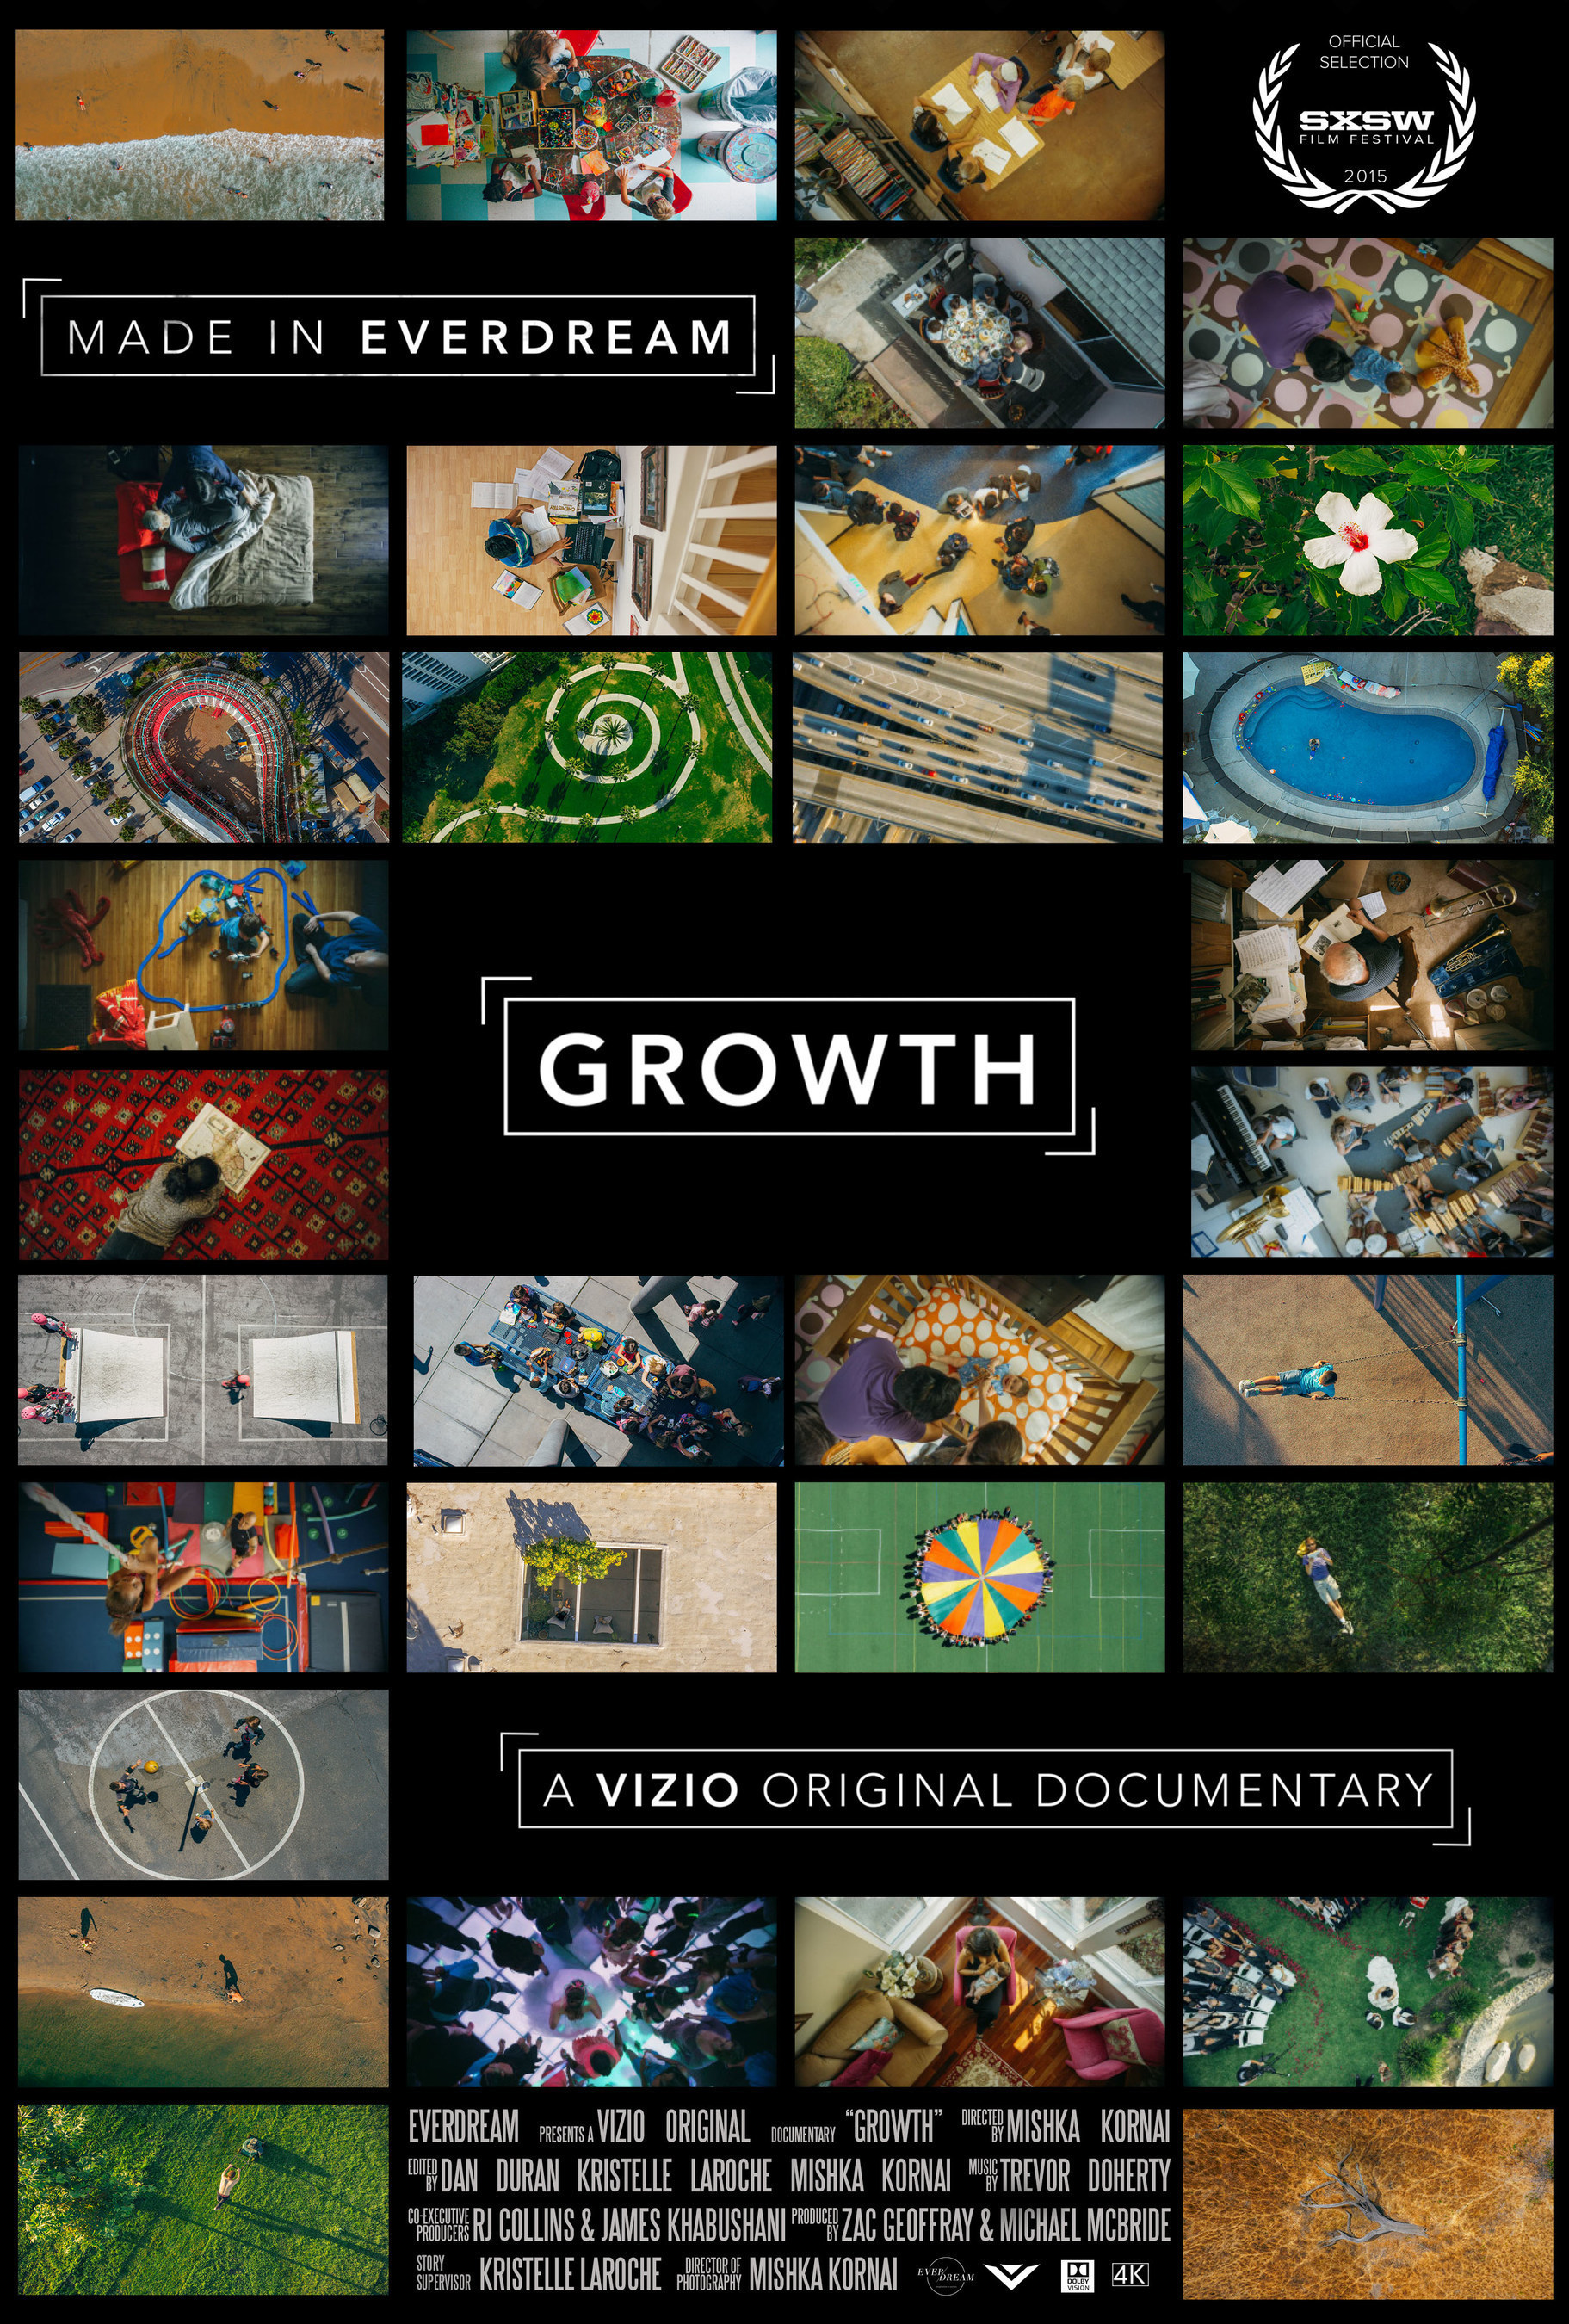 VIZIO's First Original Short Film Selected To World Premiere At South by Southwest' (SXSW') Film Festival 2015